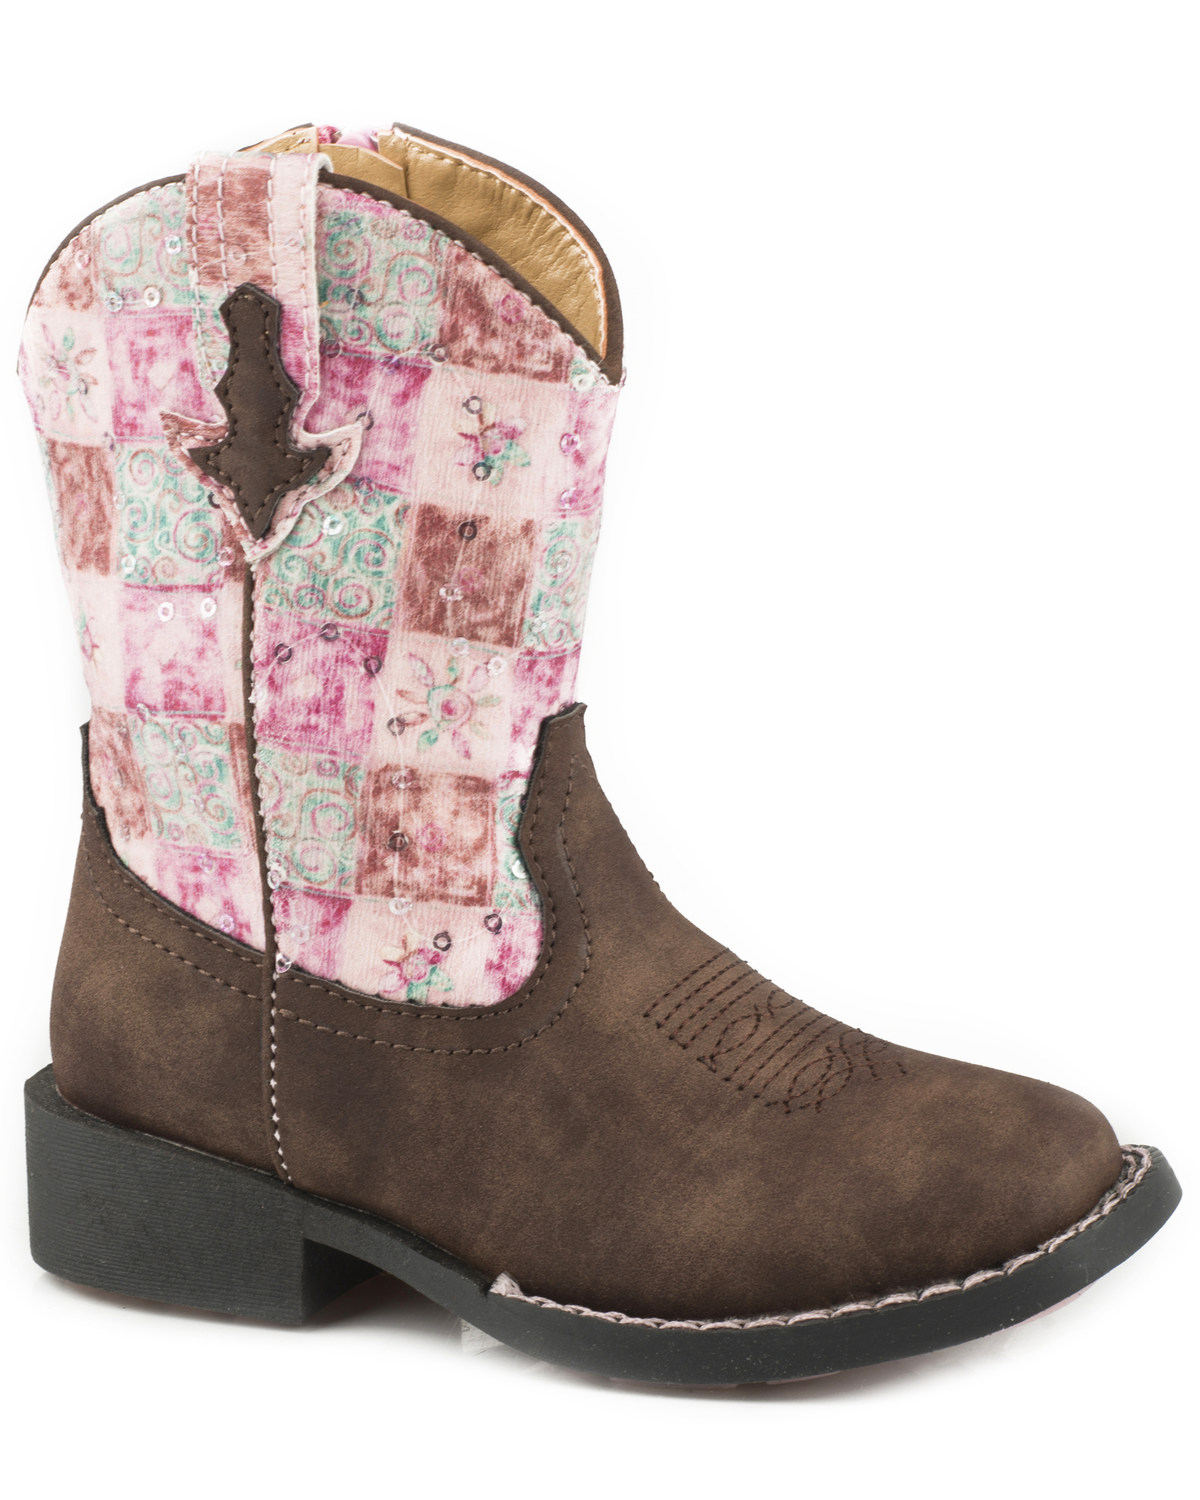 ccf60bd3659 Roper Toddler Girls' Floral Shine Sequin Cowgirl Boots - Square Toe